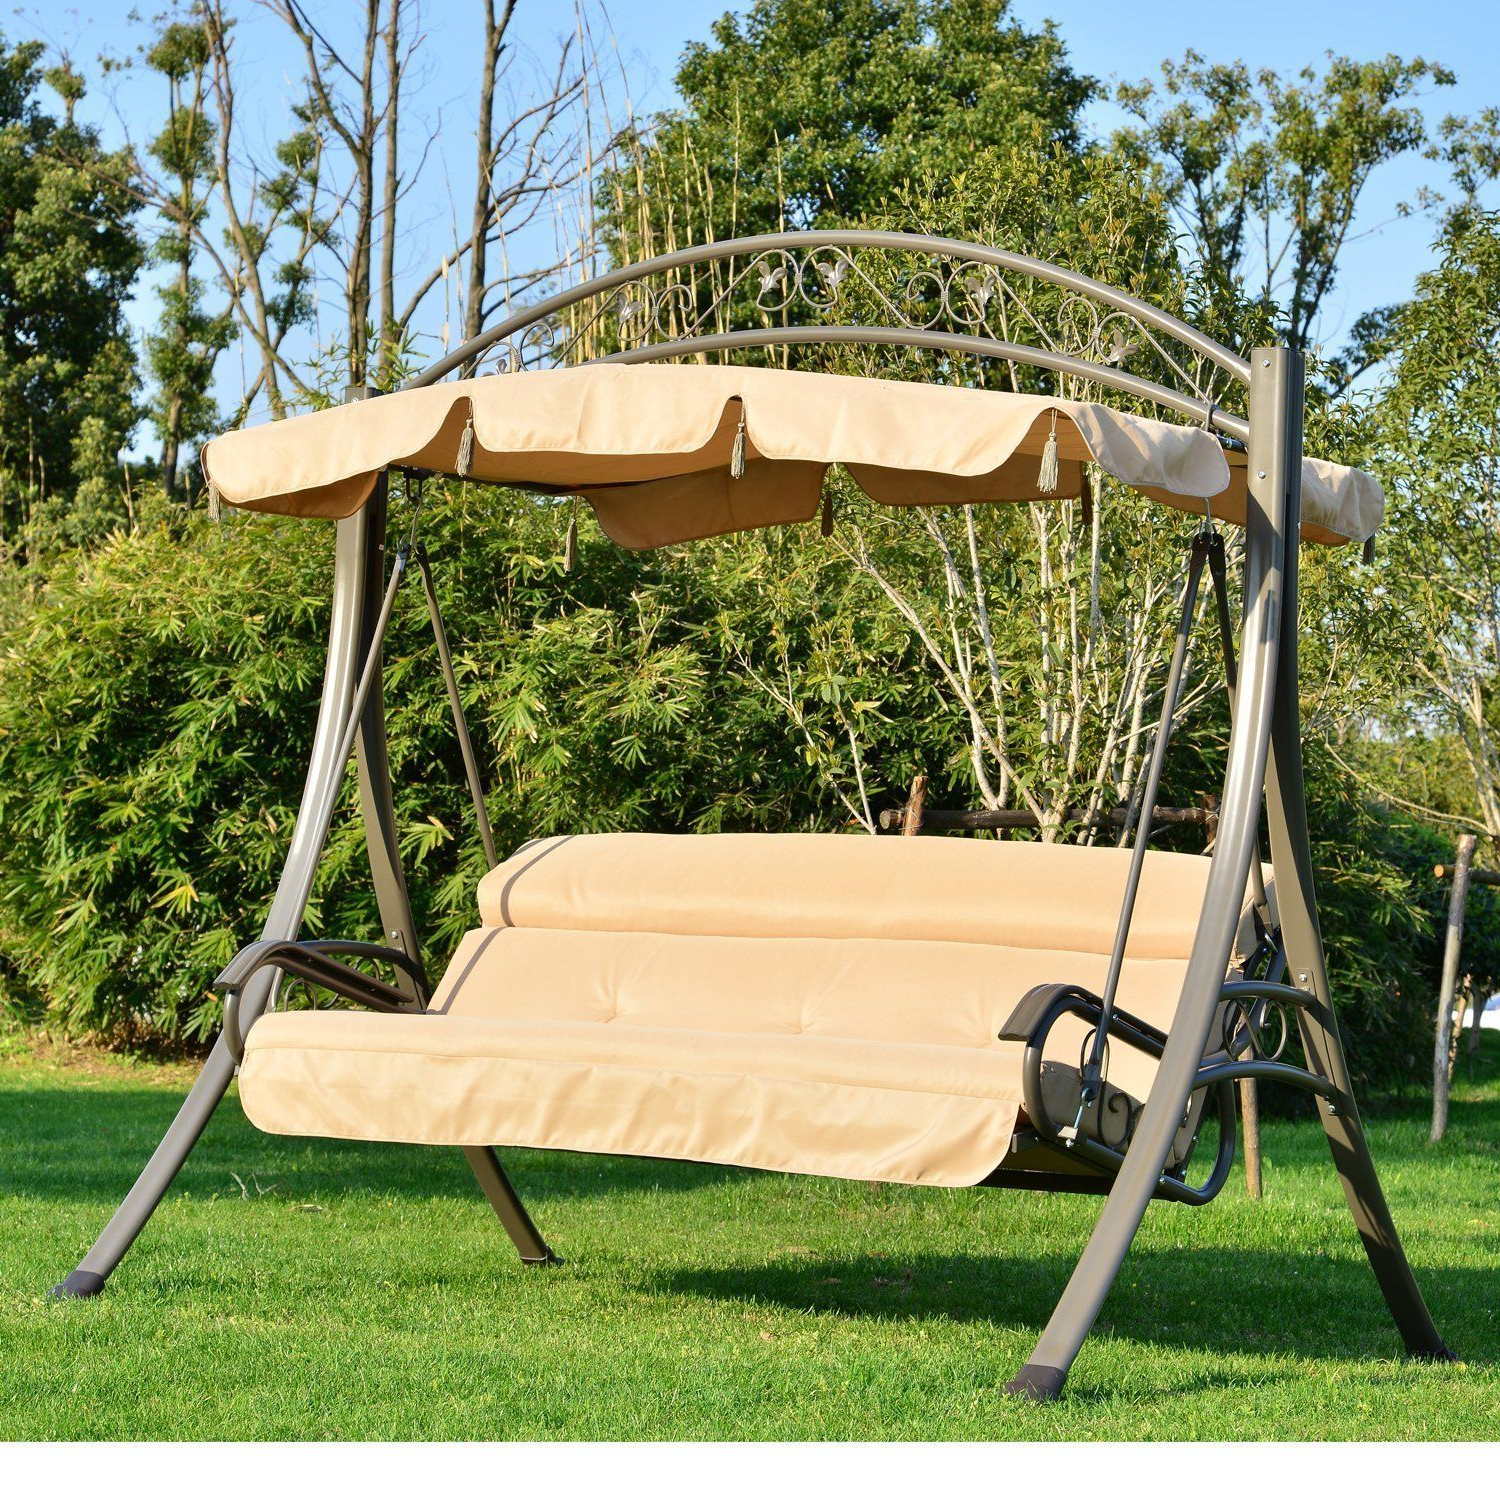 3 Seat Pergola Swings For Famous Outsunny 3 Seater Outdoor Garden Patio Metal Swing Chair (View 8 of 25)